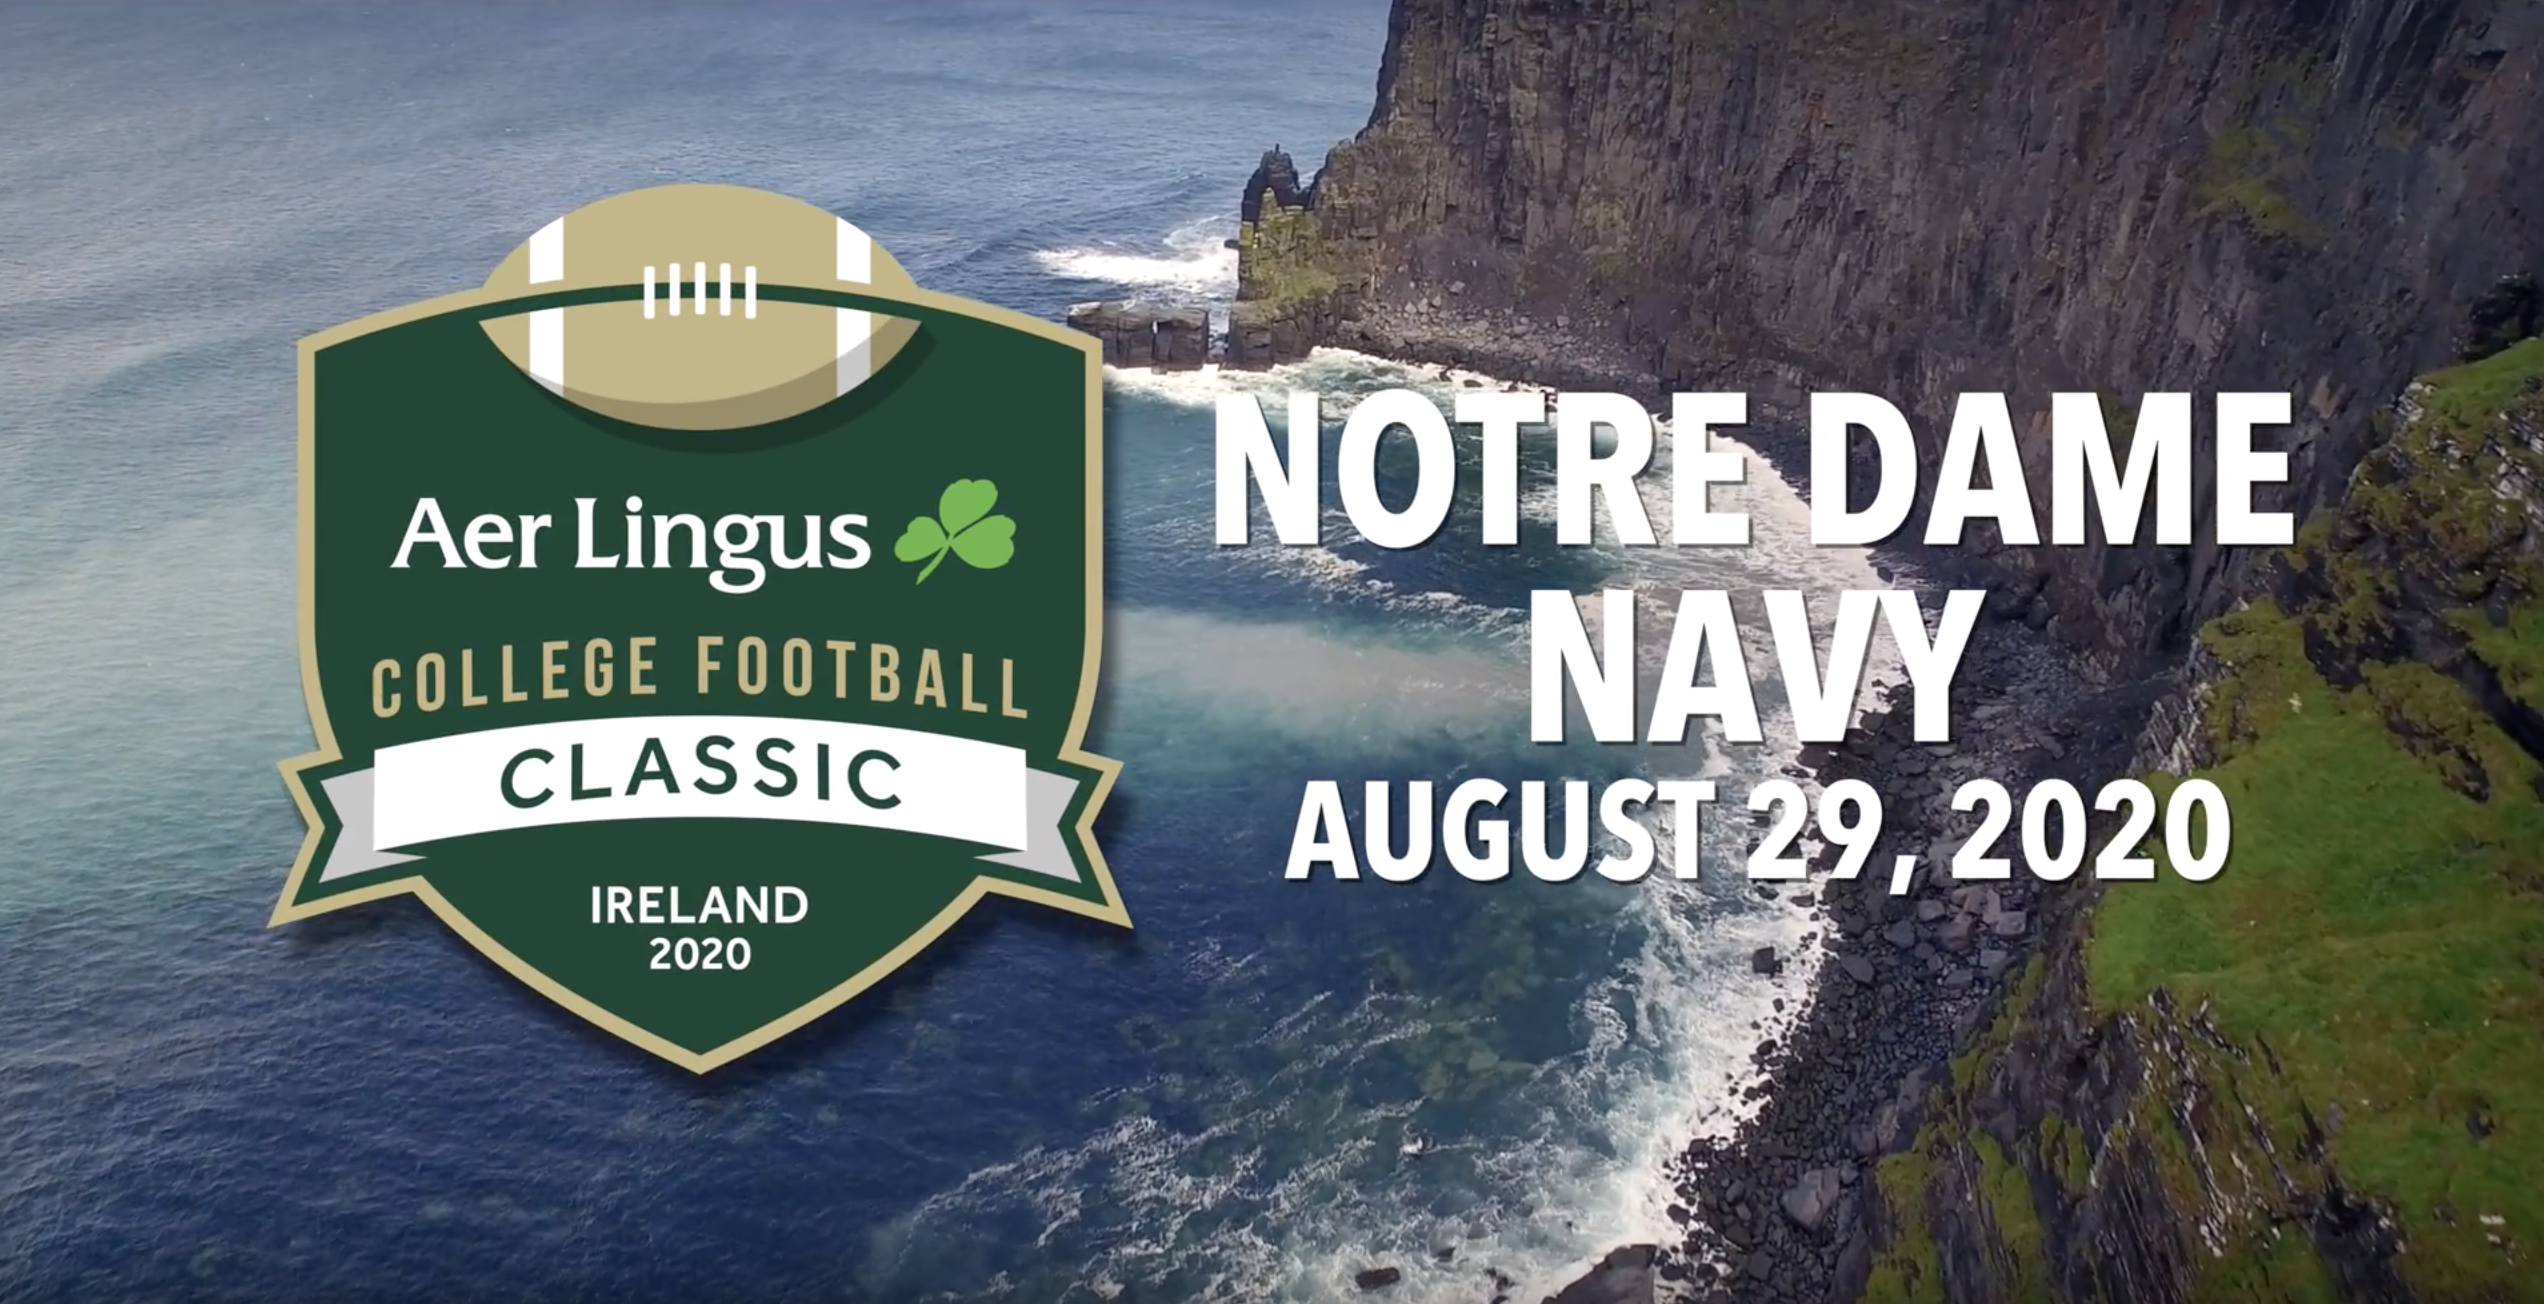 2020 Navy Football Schedule Notre Dame And Navy Will Play In Dublin Ireland In 2020 Inside